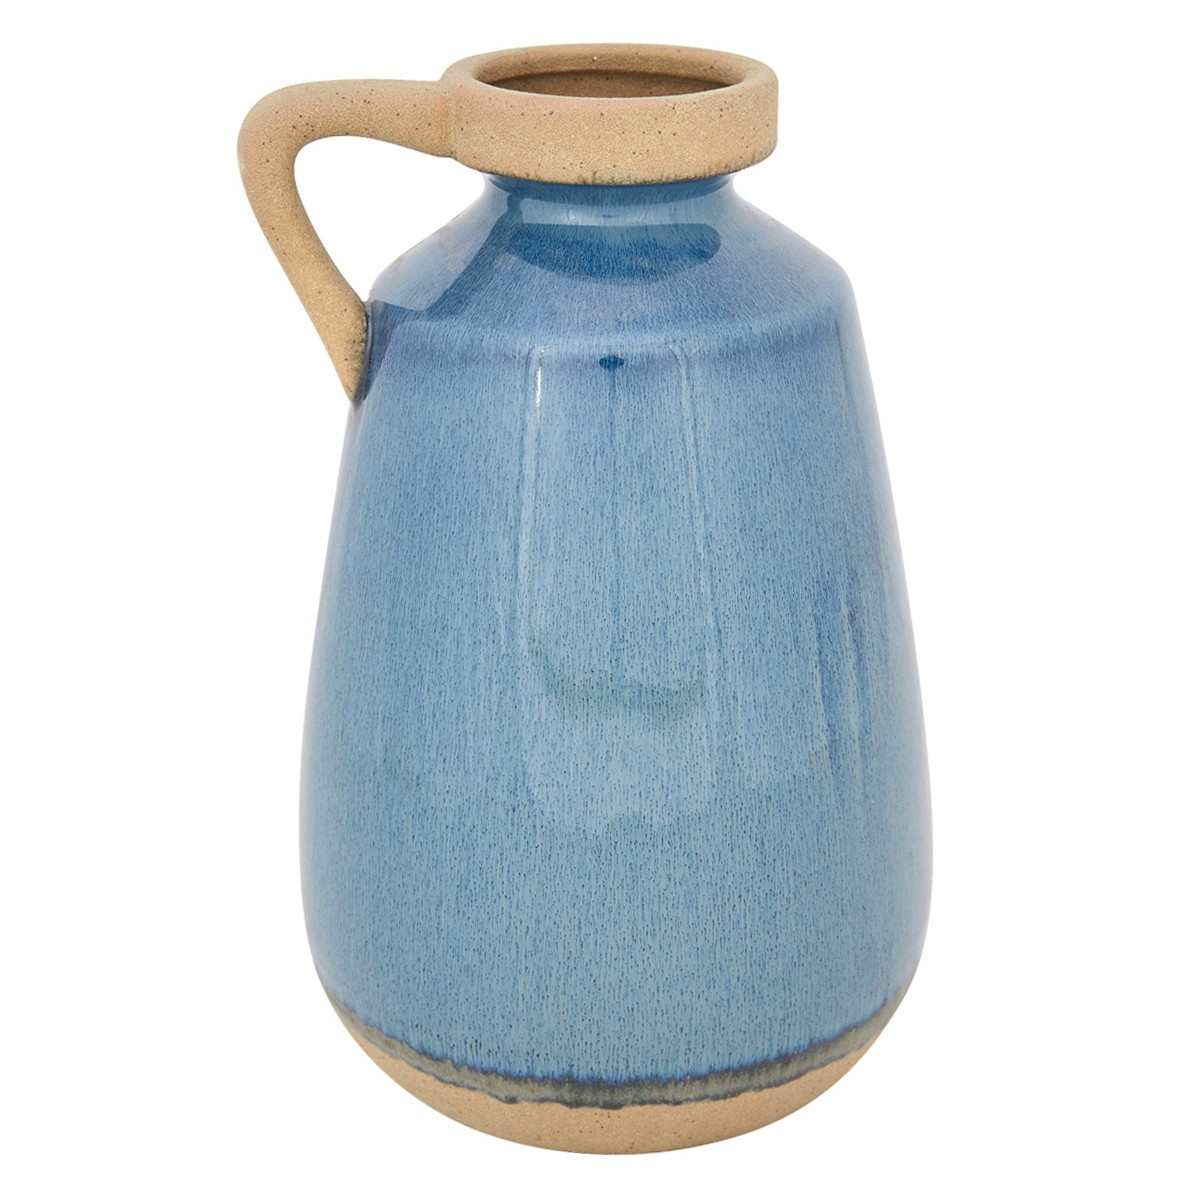 Grecian Ceramic Jug Bud Vase, Small, Blue